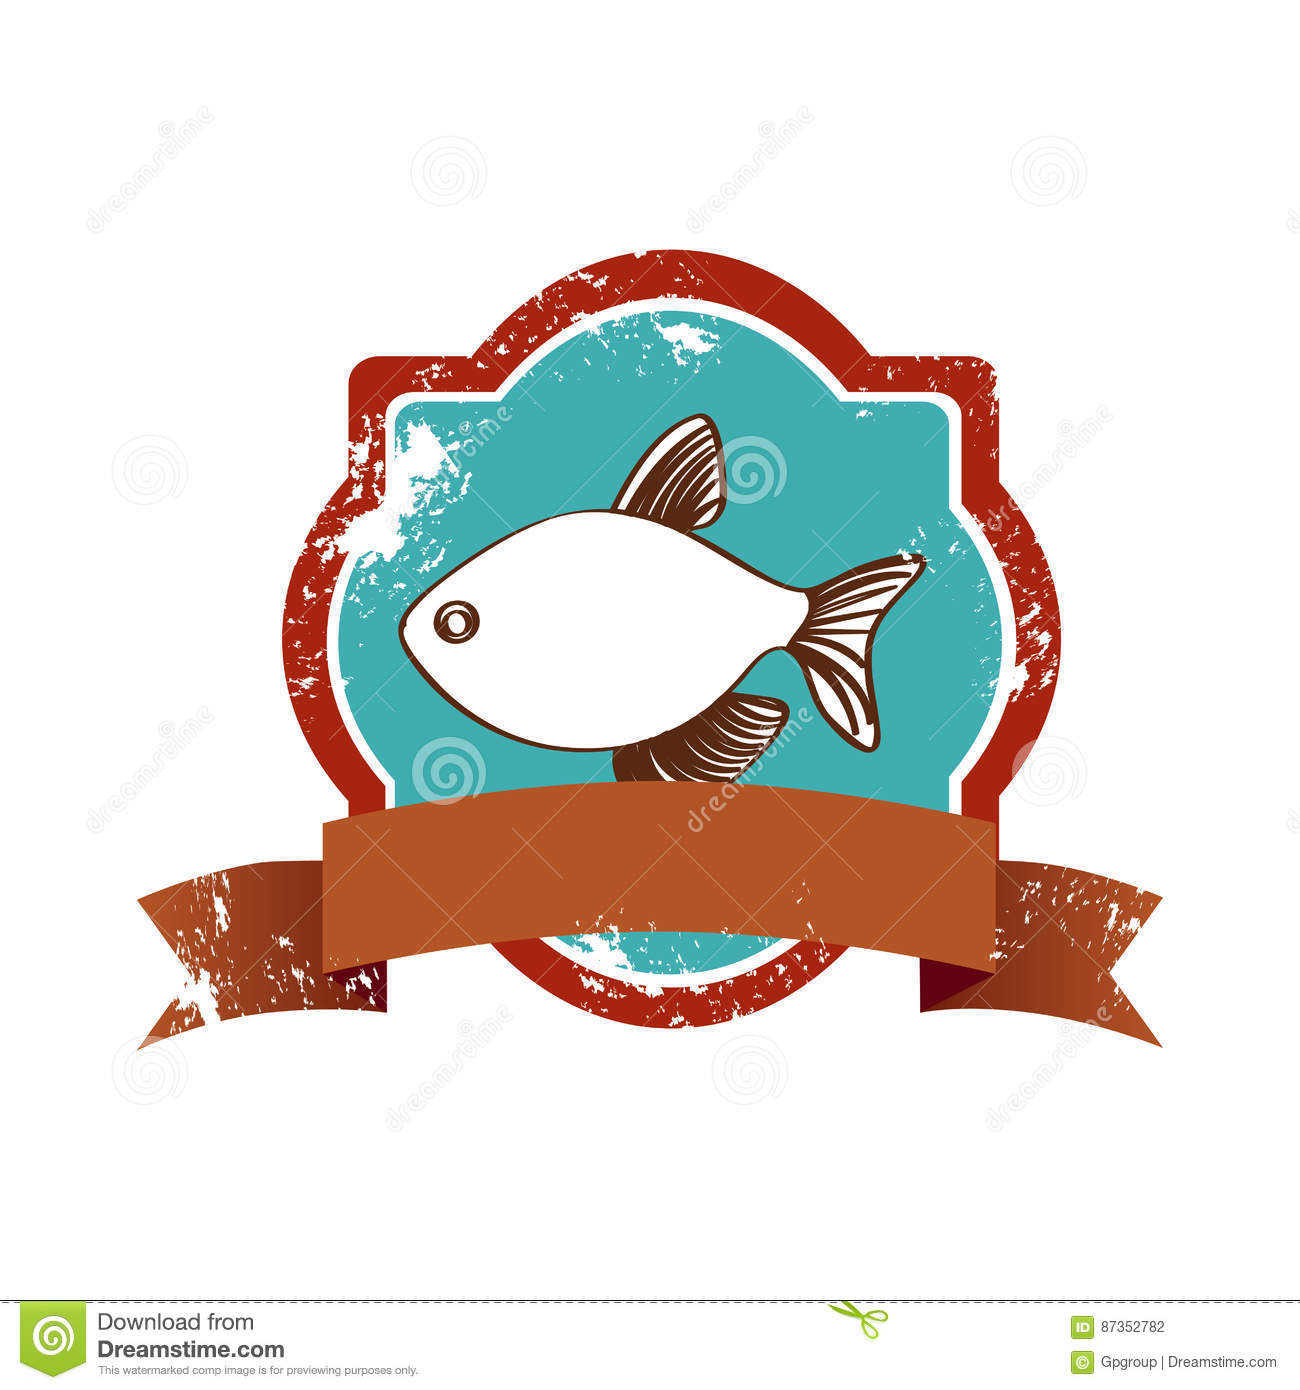 old heraldic borders with fish and label stock illustration